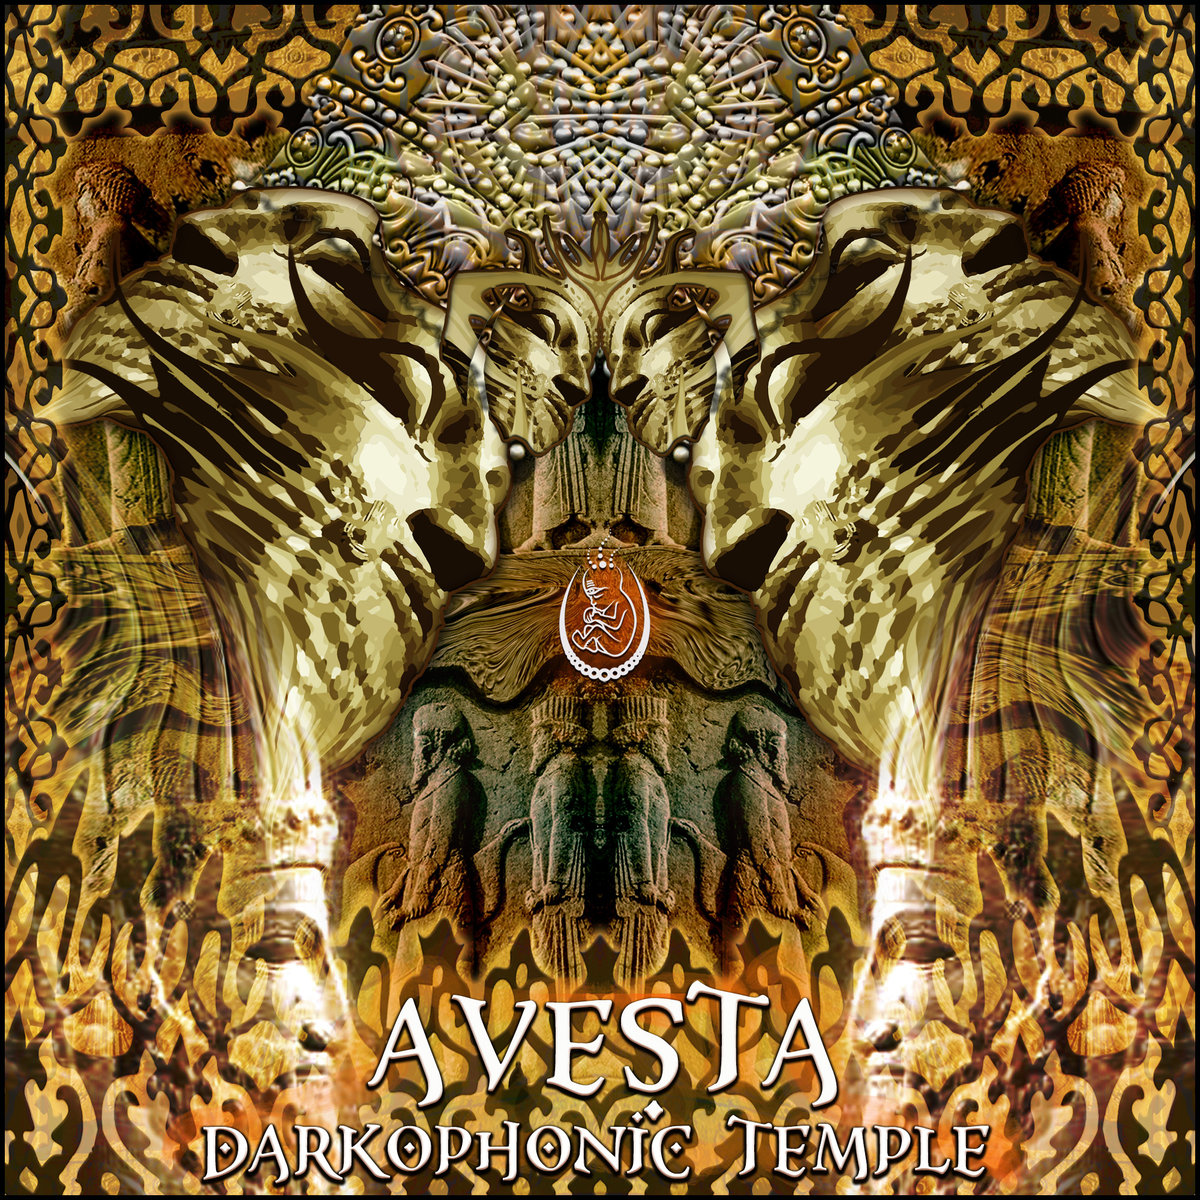 Darkophonic Temple - Avesta